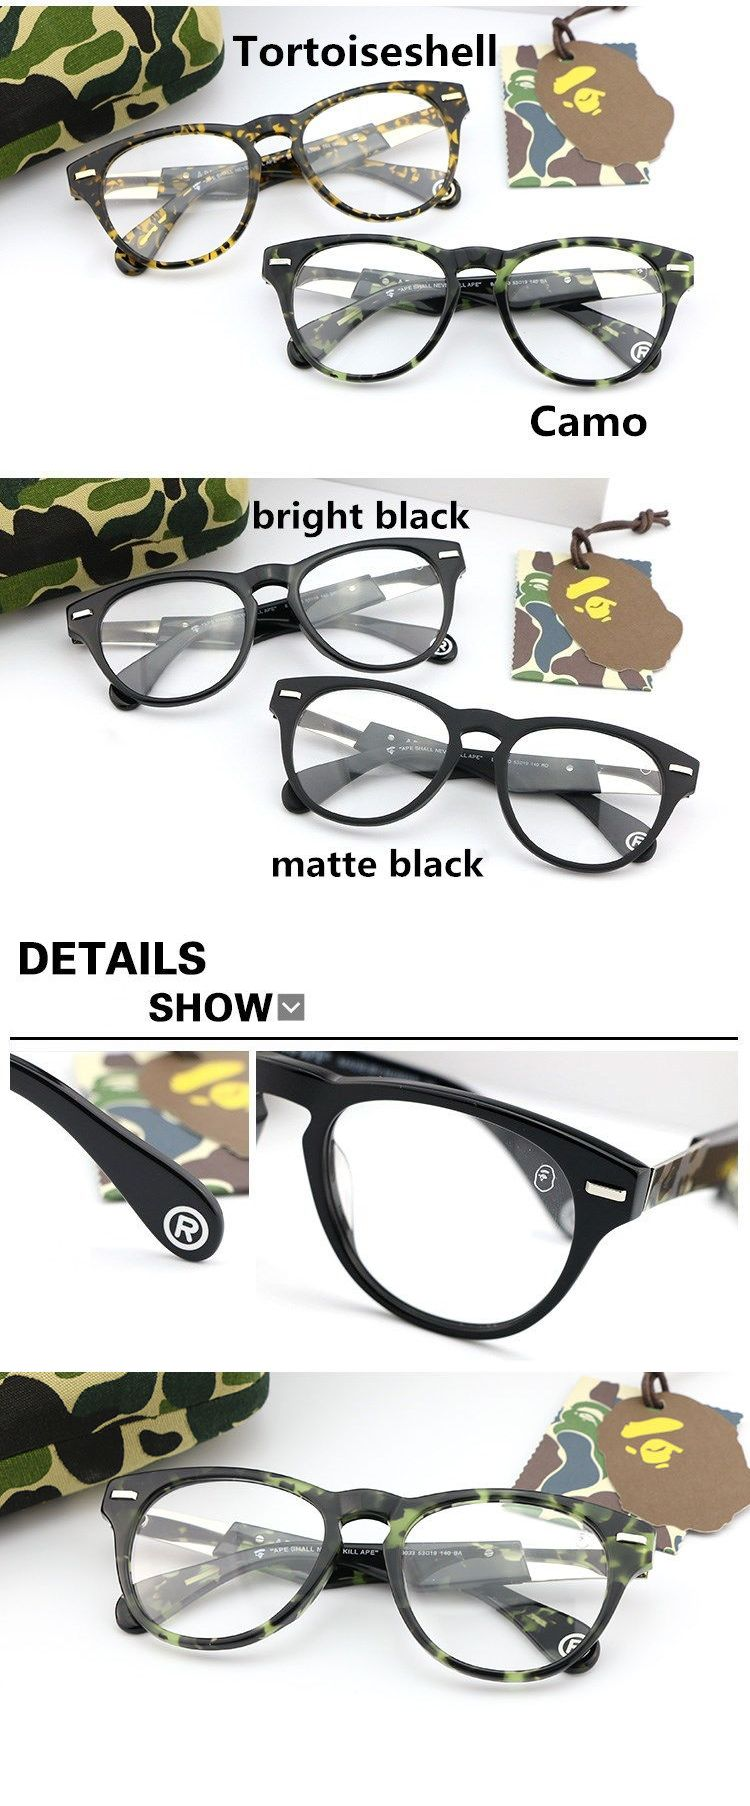 aa657d1879 Fashion Eyewear Clear Glasses 179244  A Bathing Ape Glasses Bape Eyewear  Glasses Vintage 4 Colors Brand New -  BUY IT NOW ONLY   68.99 on eBay!